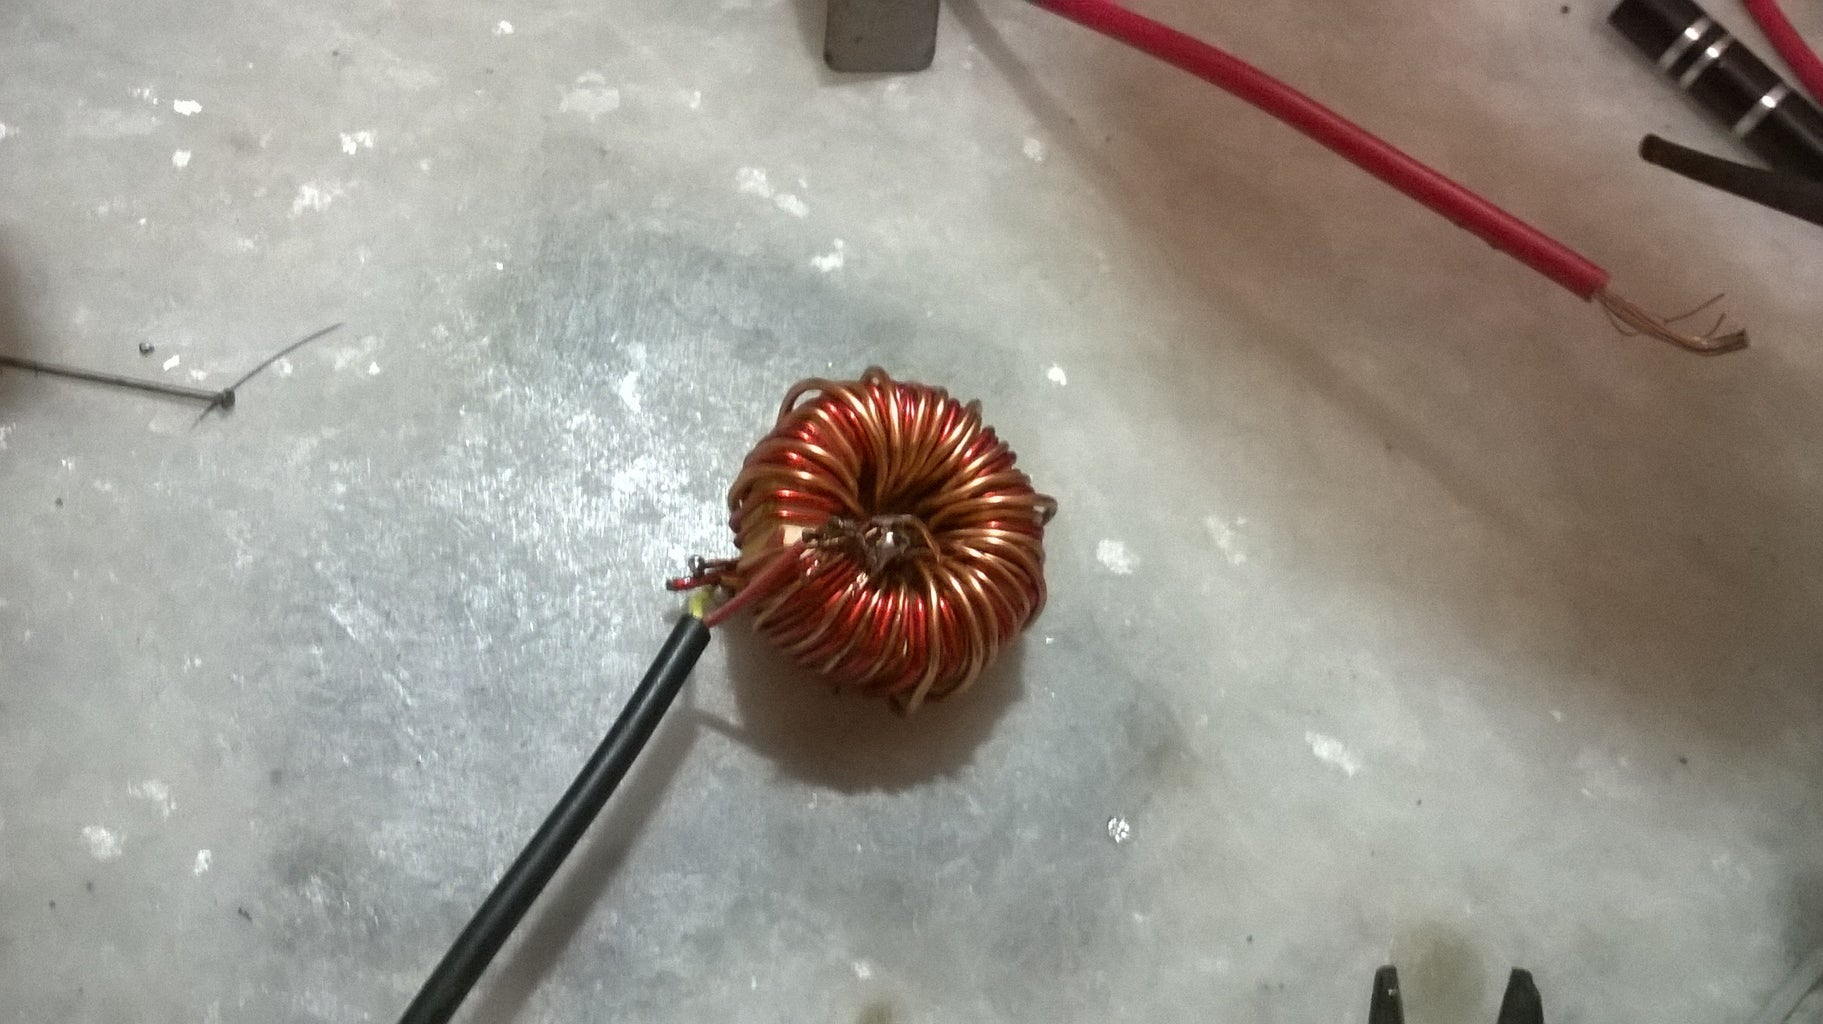 Step 7: Attaching the Coil